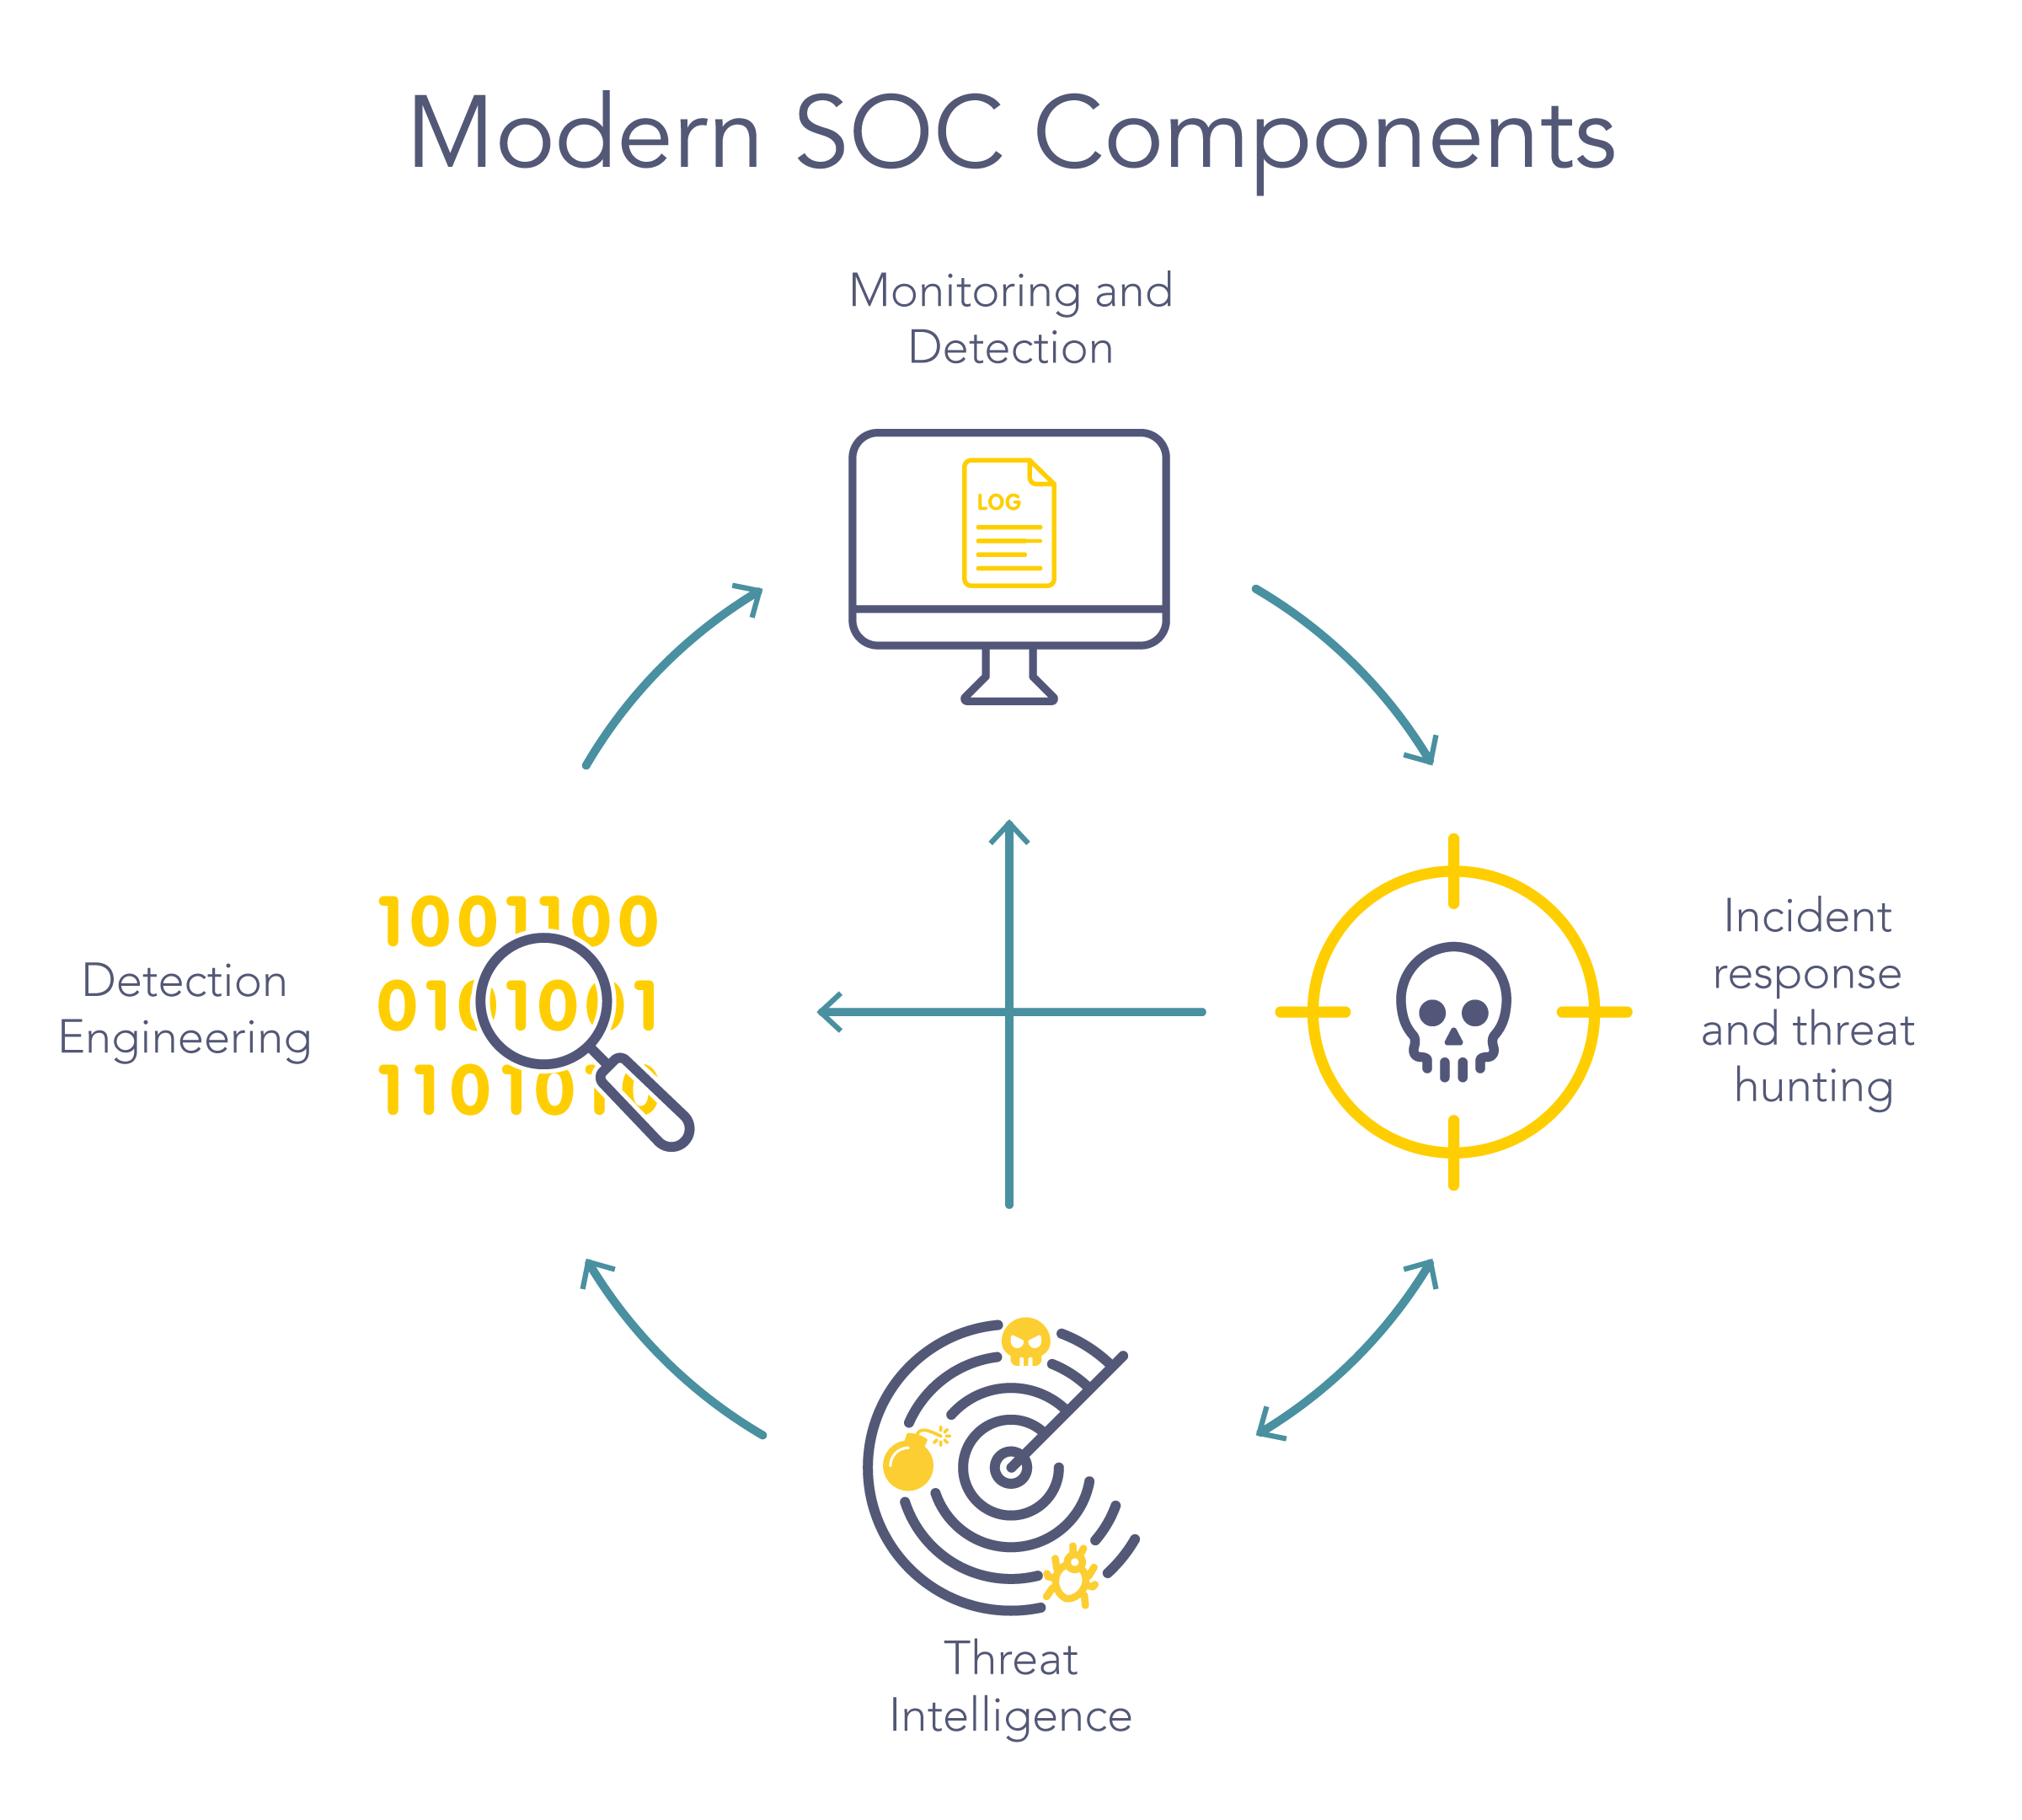 Modern Security Operations Center components